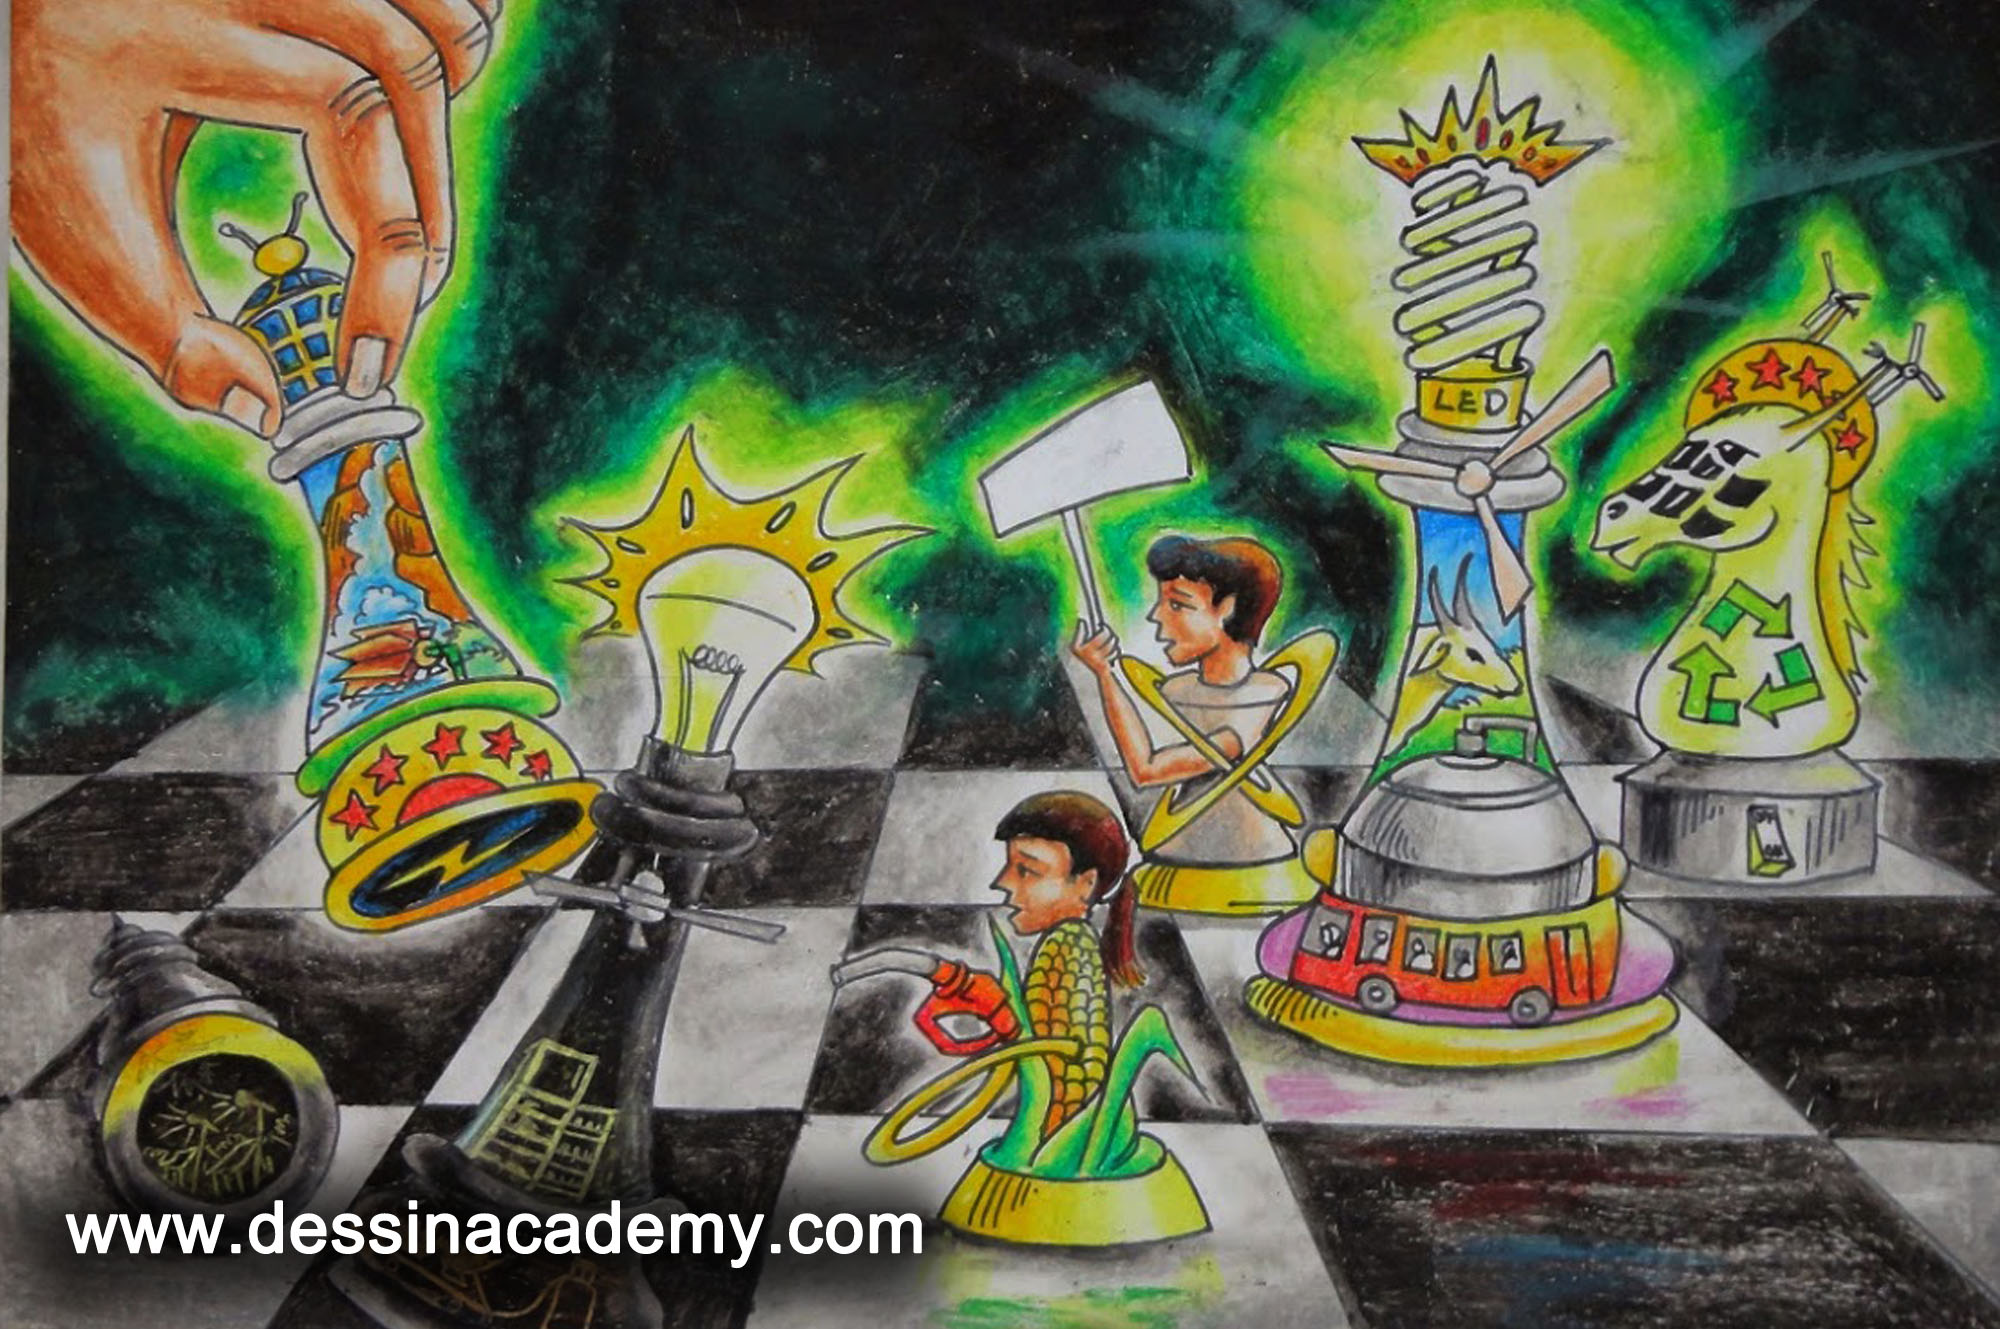 Dessin School of Arts Students Painting, Dessin School of Arts, Pencil Drawing School in Anna Nagar East L Block